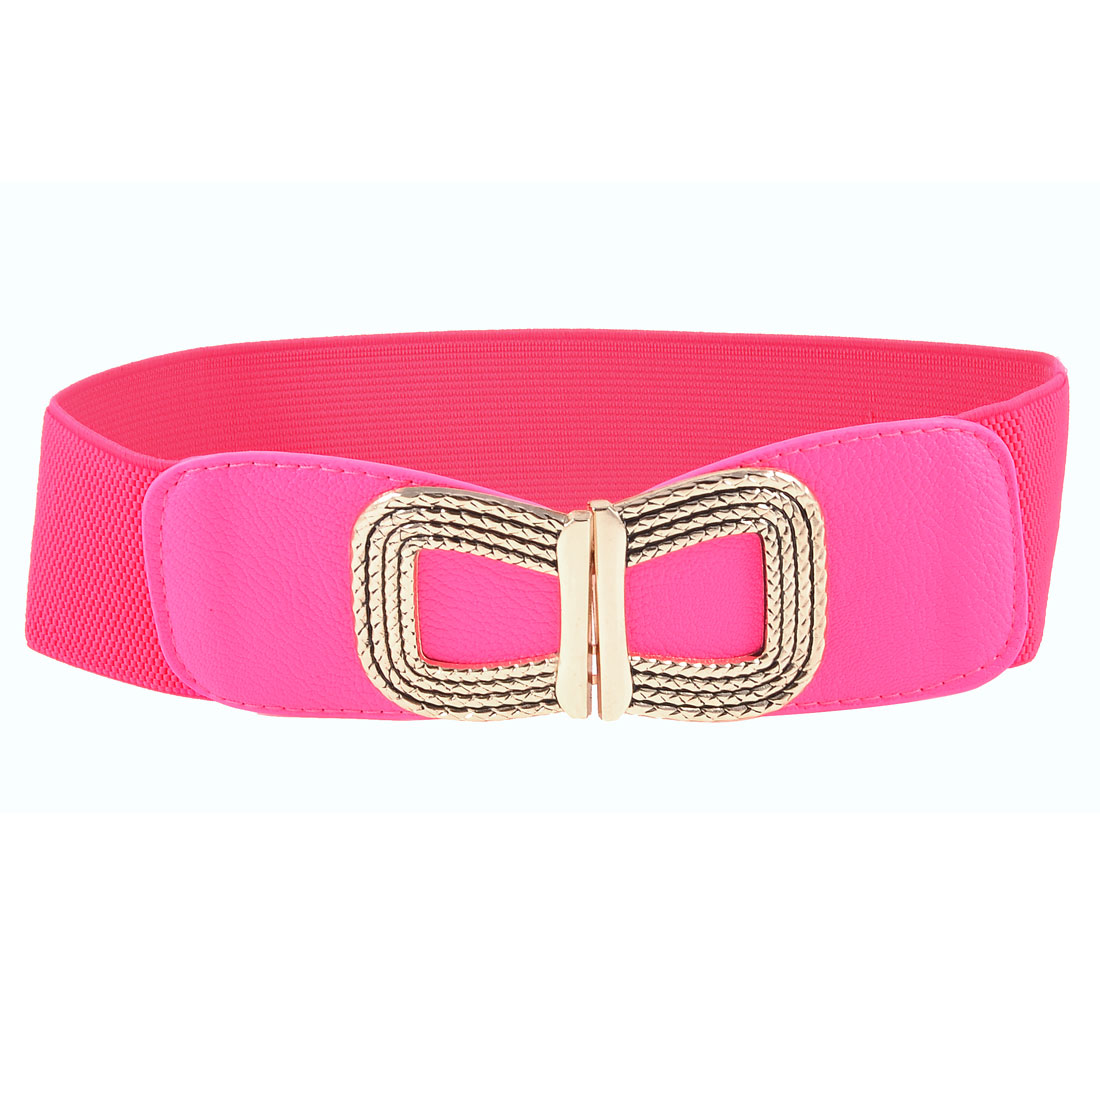 Women Gold Tone Metal Bowknot Decorated Hot Pink Elastic Waist Belt Band